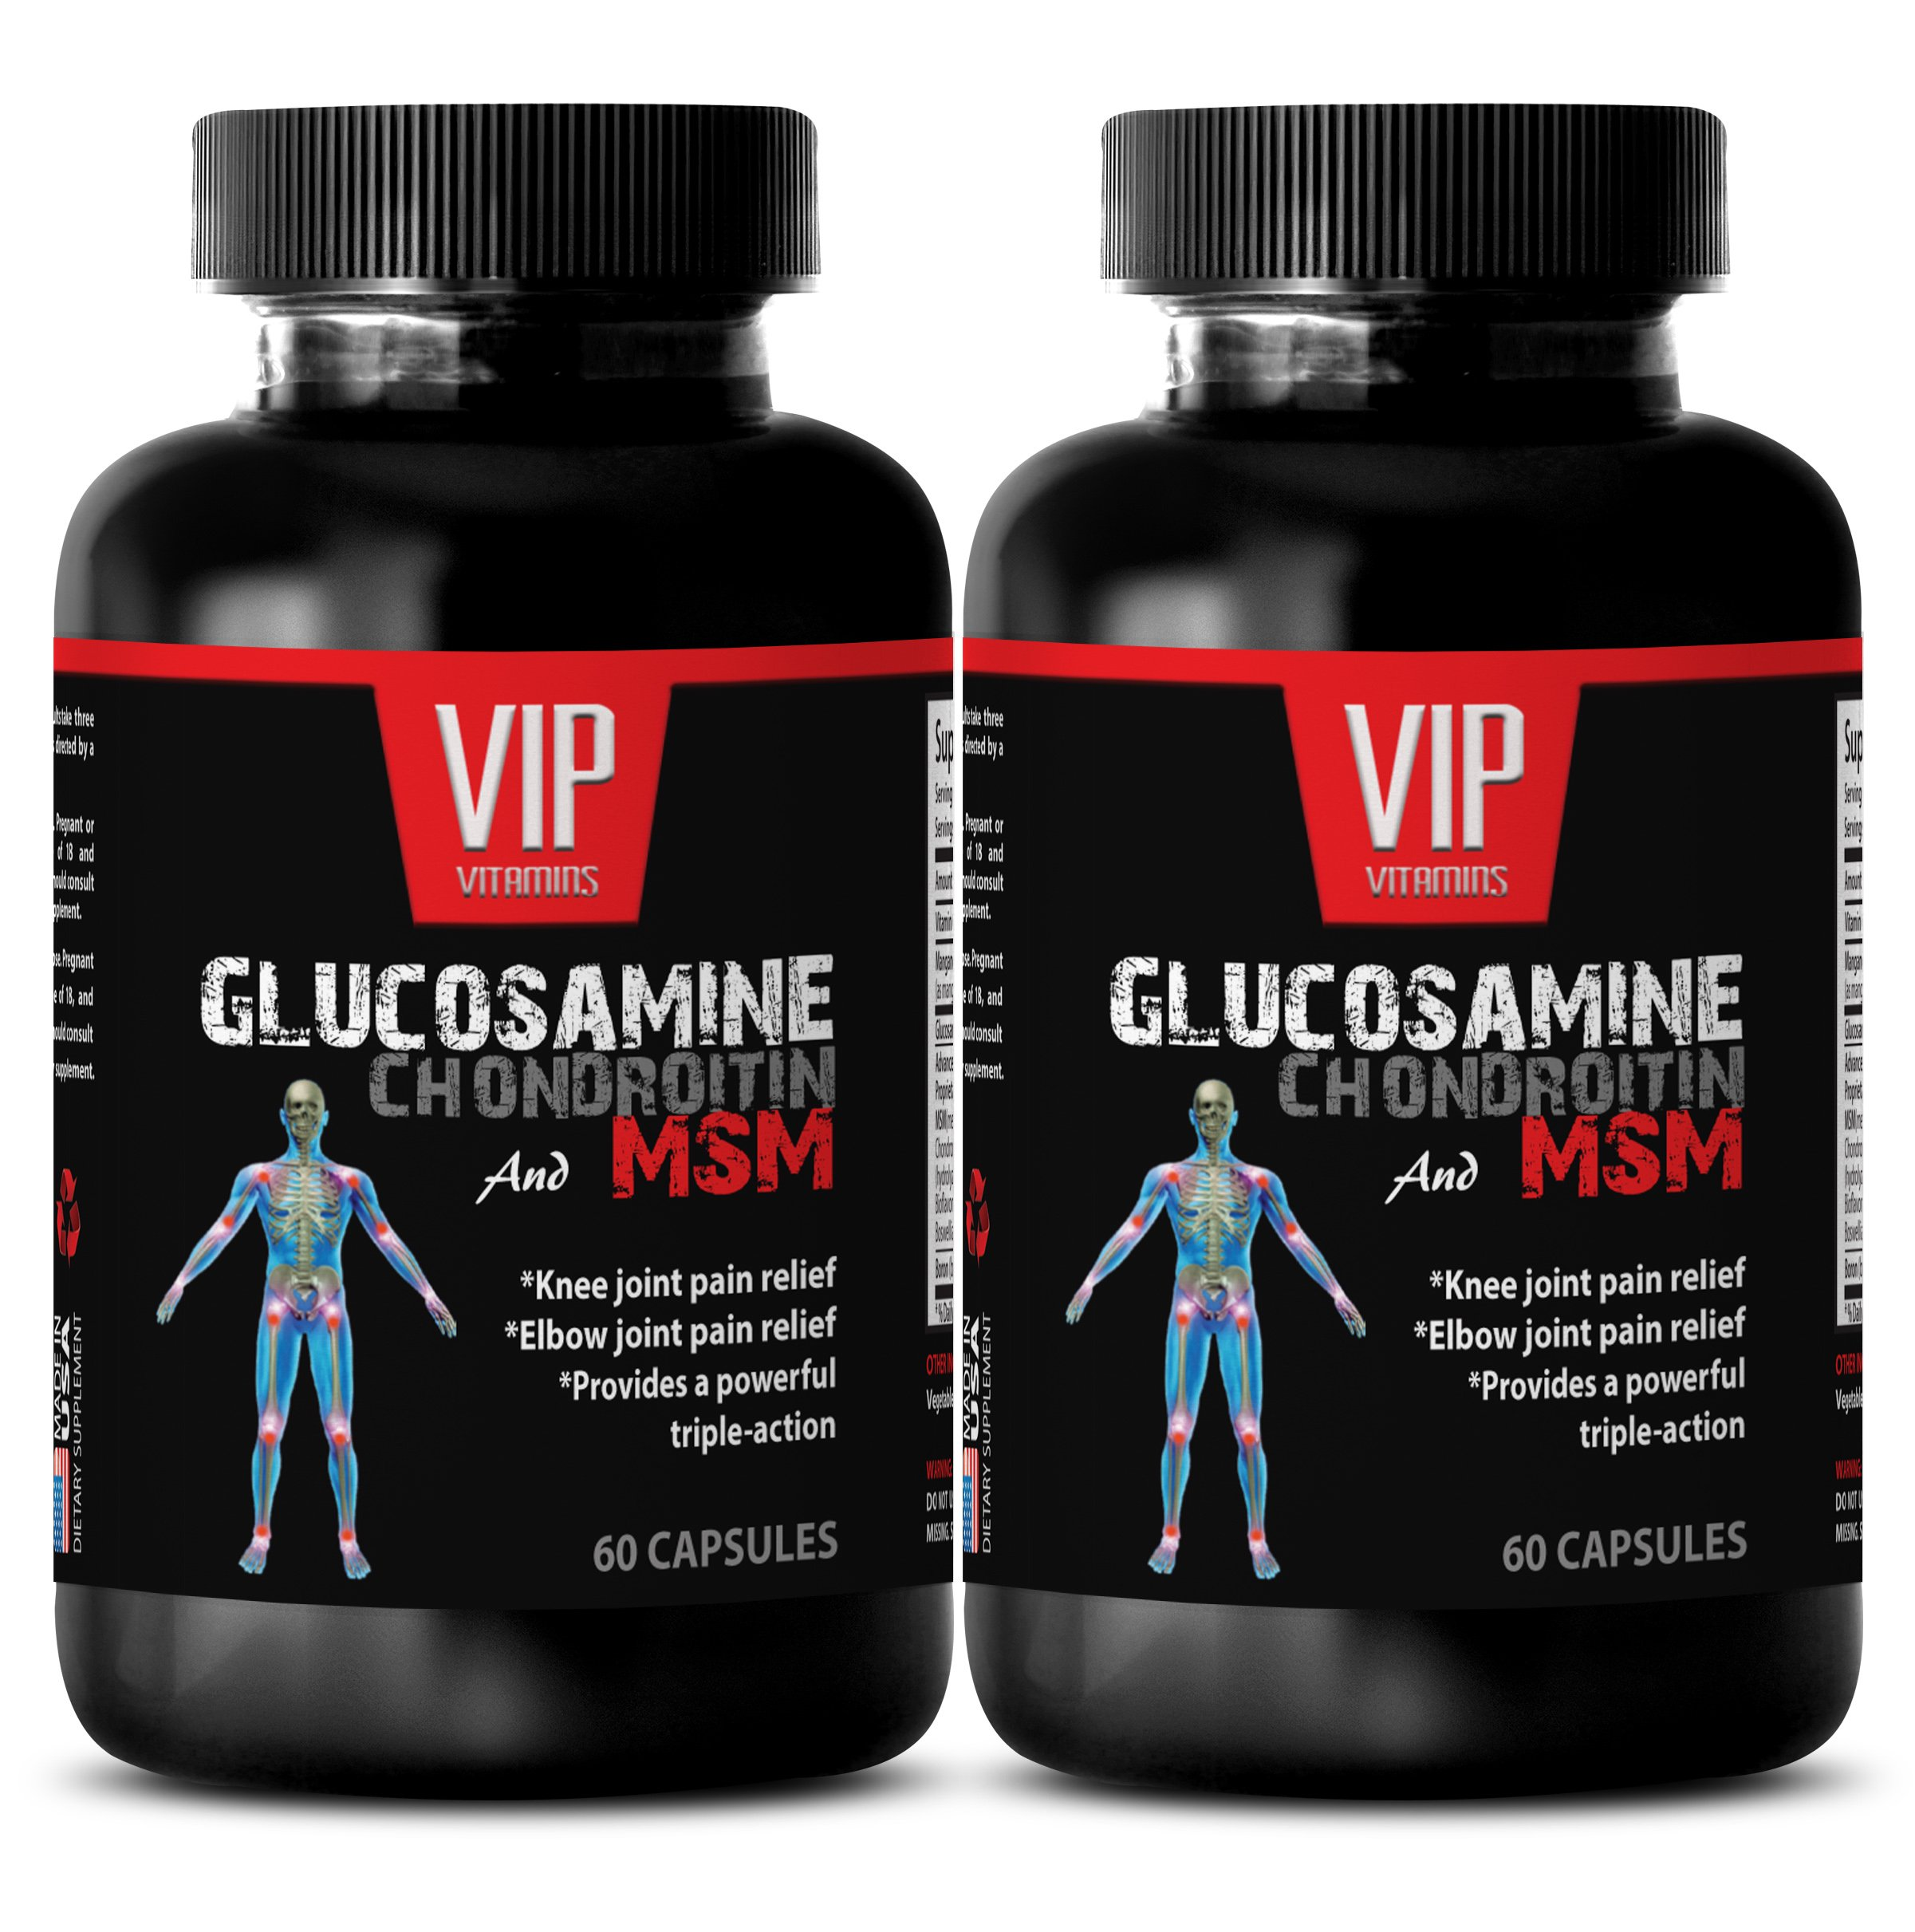 immune support dietary supplement - GLUCOSAMINE CHONDROITIN & MSM 3200MG - msm tablets - 2 Bottles 120 Capsules